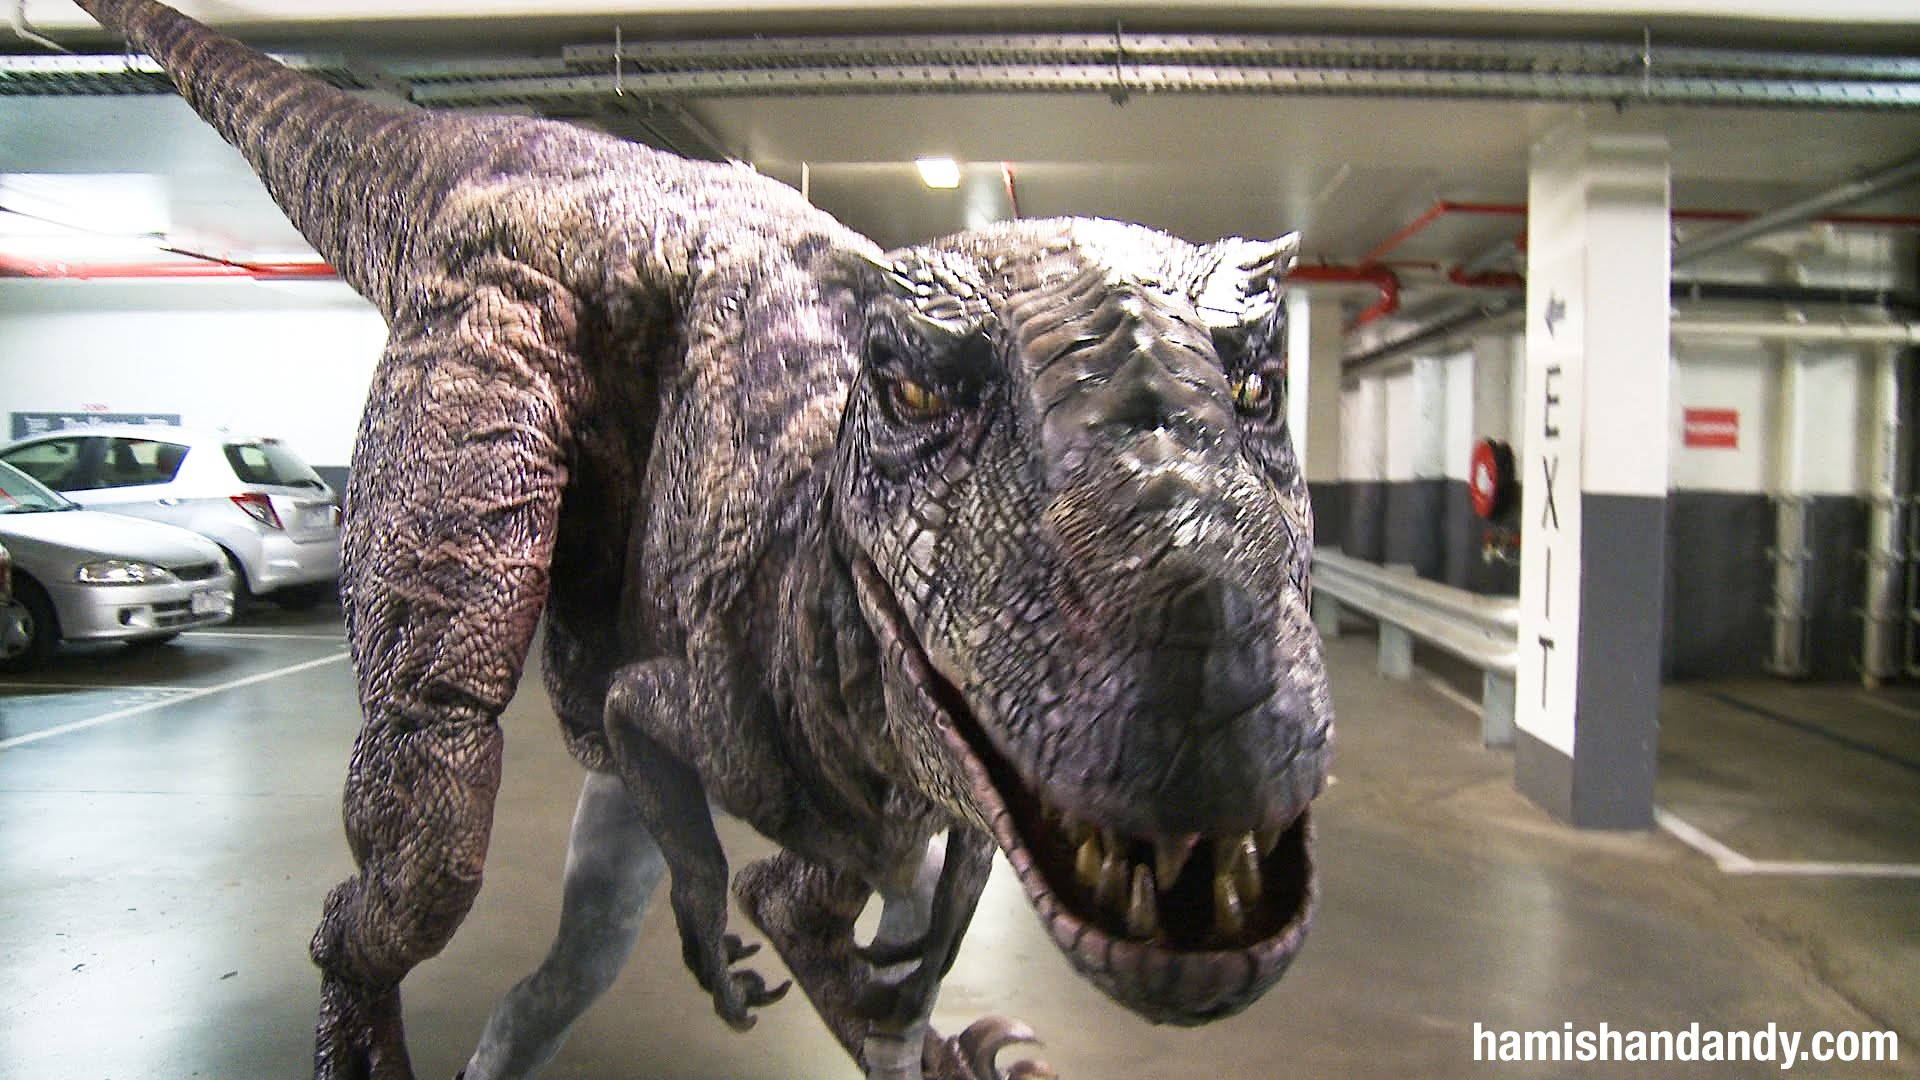 & Dinosaur Terrorizes Drivers in Parking Garage | RTM - RightThisMinute